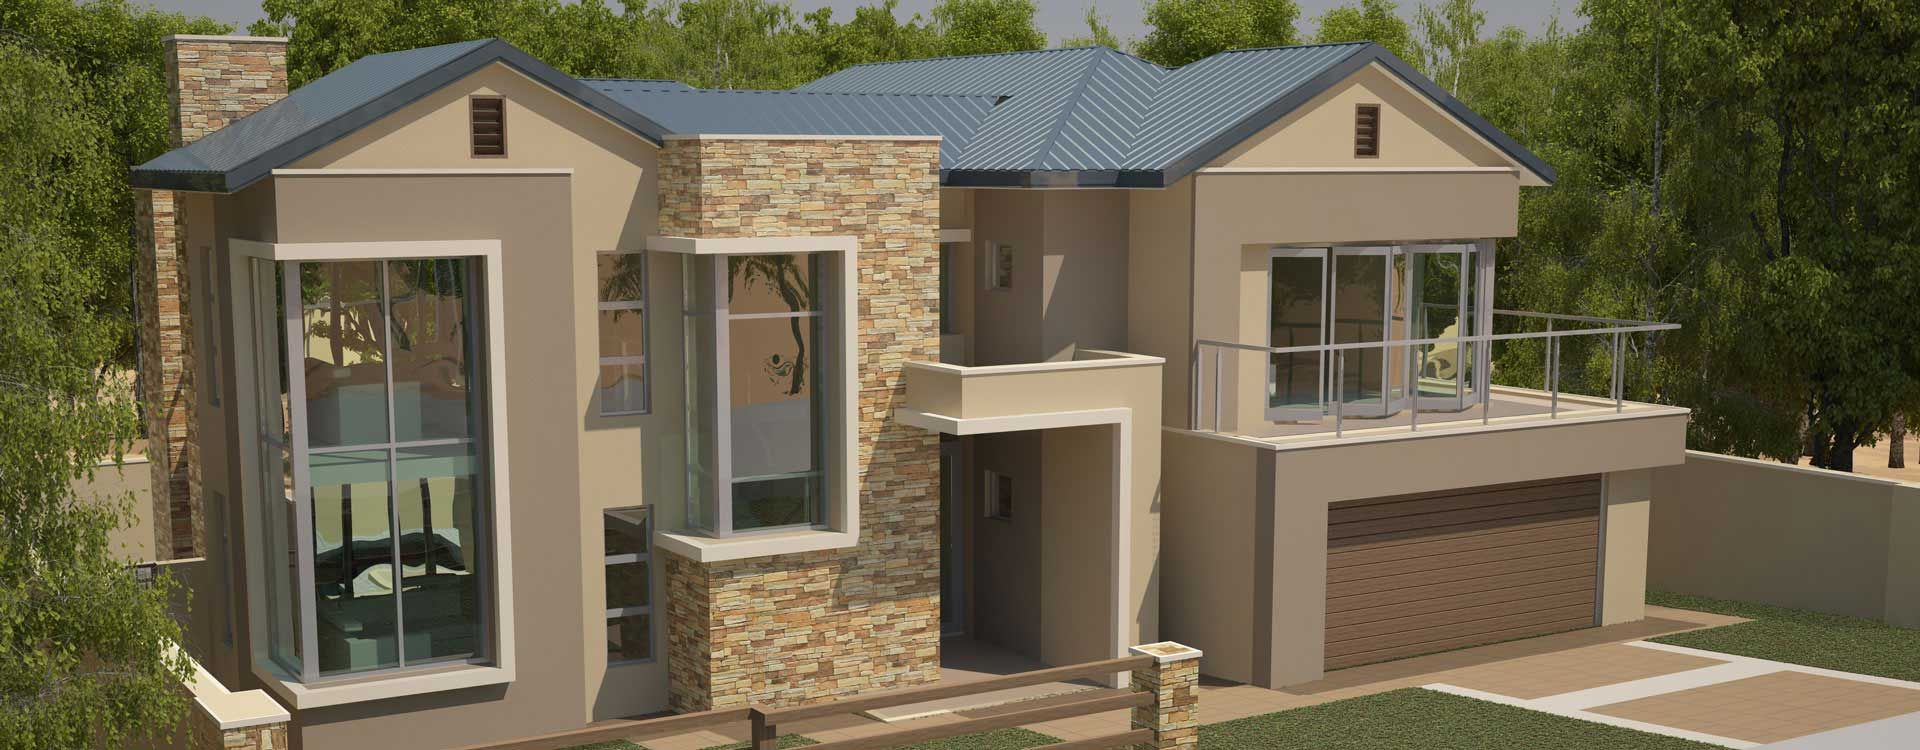 2 Bedroom Double Storey House Plans In South Africa  Best